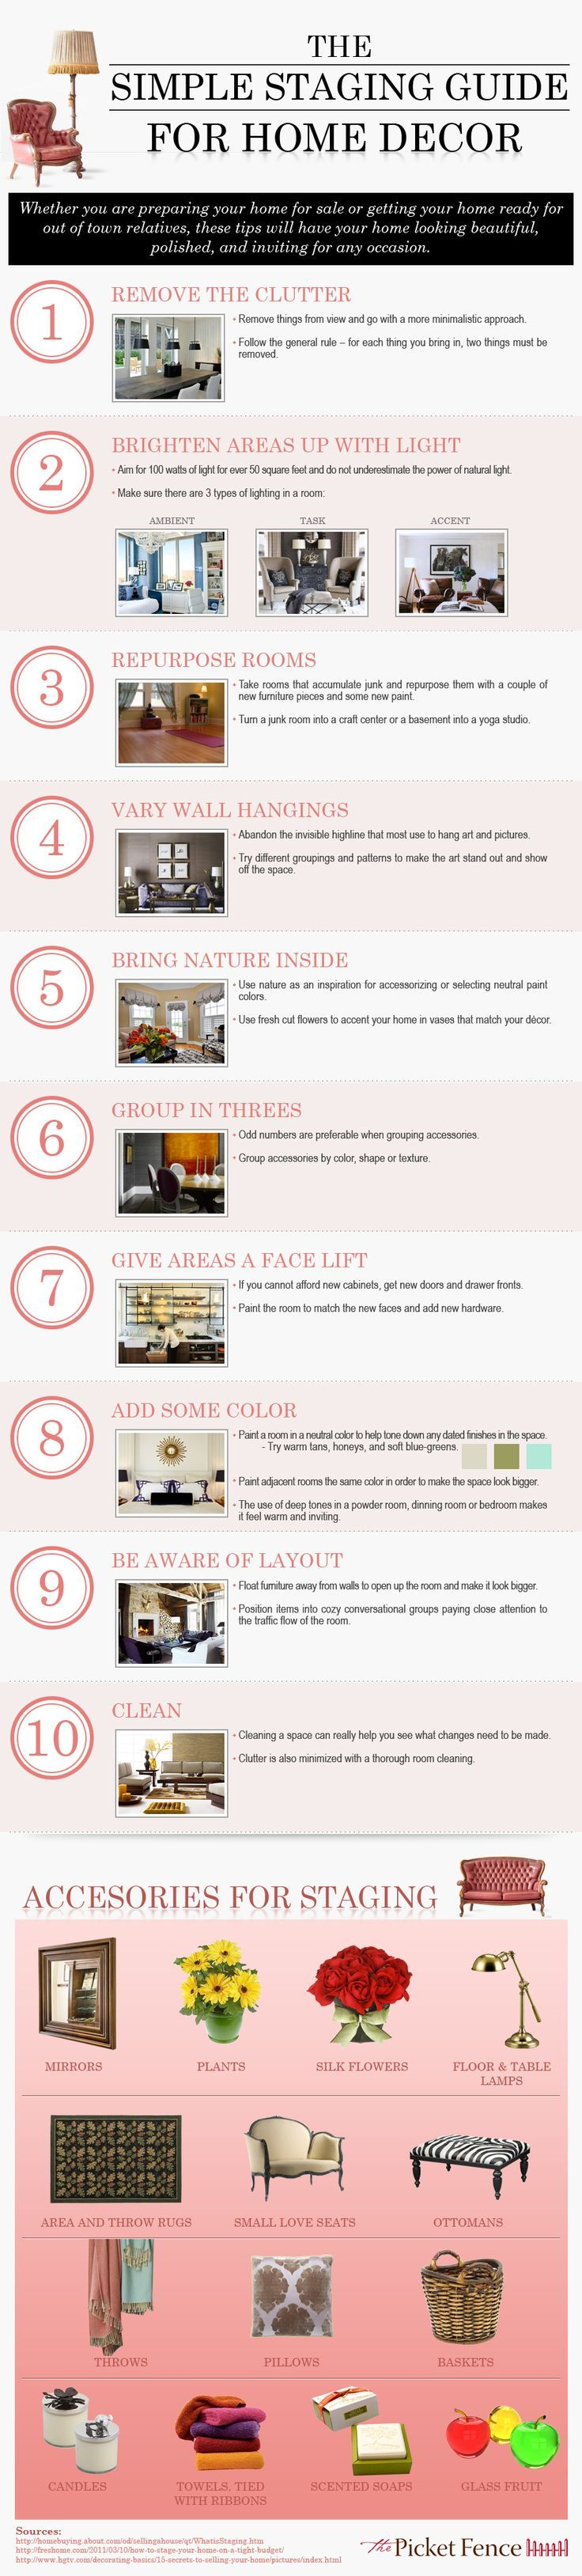 The Simple Staging Guide for Home Decor ... Whether you're getting ready to sell your home or just want a fresh new look for a single room, here are some great home staging ideas that are easy to do. #homestaging #sellingahome #realestate - Gene Mundt, Chicagoland Mortgage Lender, www.genemundt.com, 708.921.6331, NMLS 216987